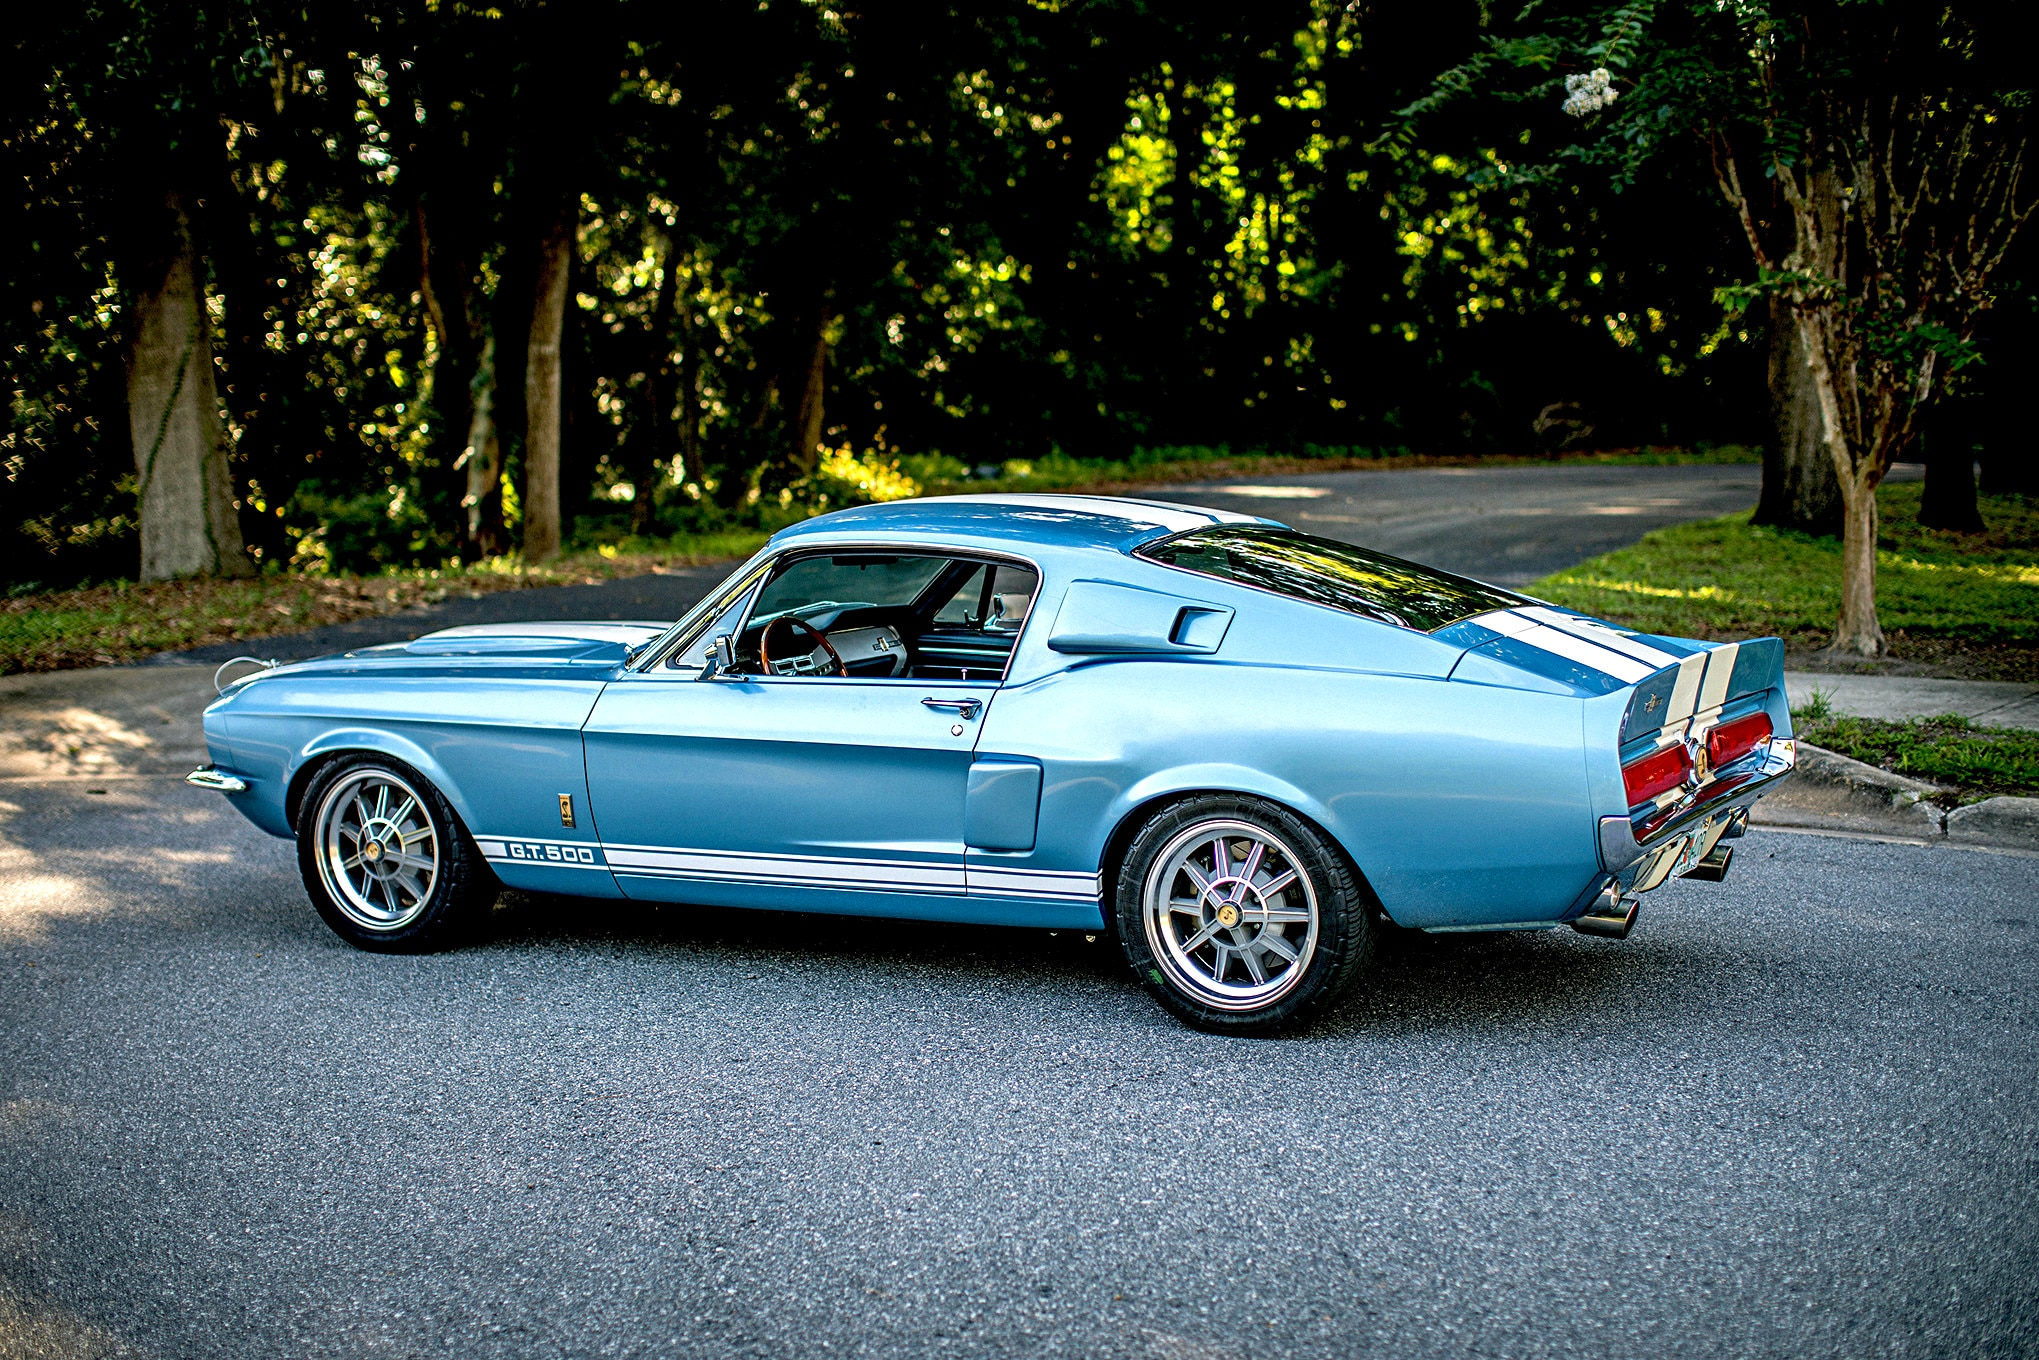 Revology Cars 1967 Shelby Gt500 Ford Mustang Fastback Replica Profile Photo 259215245 Revology Cars Announces 2019 Updates To Replica Mustang Line